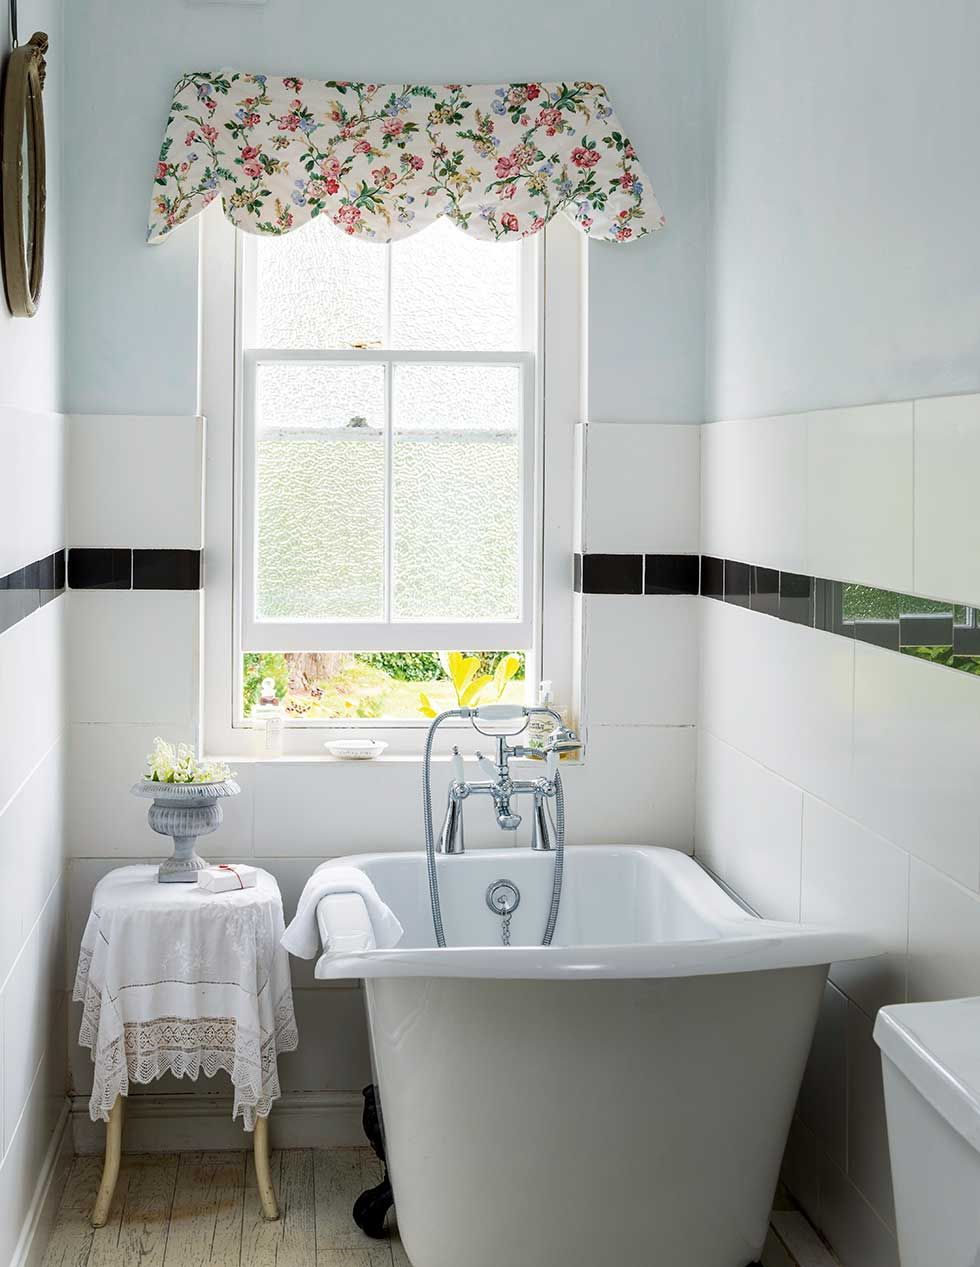 Real home: a renovated thatched holiday cottage  Cottage bathroom